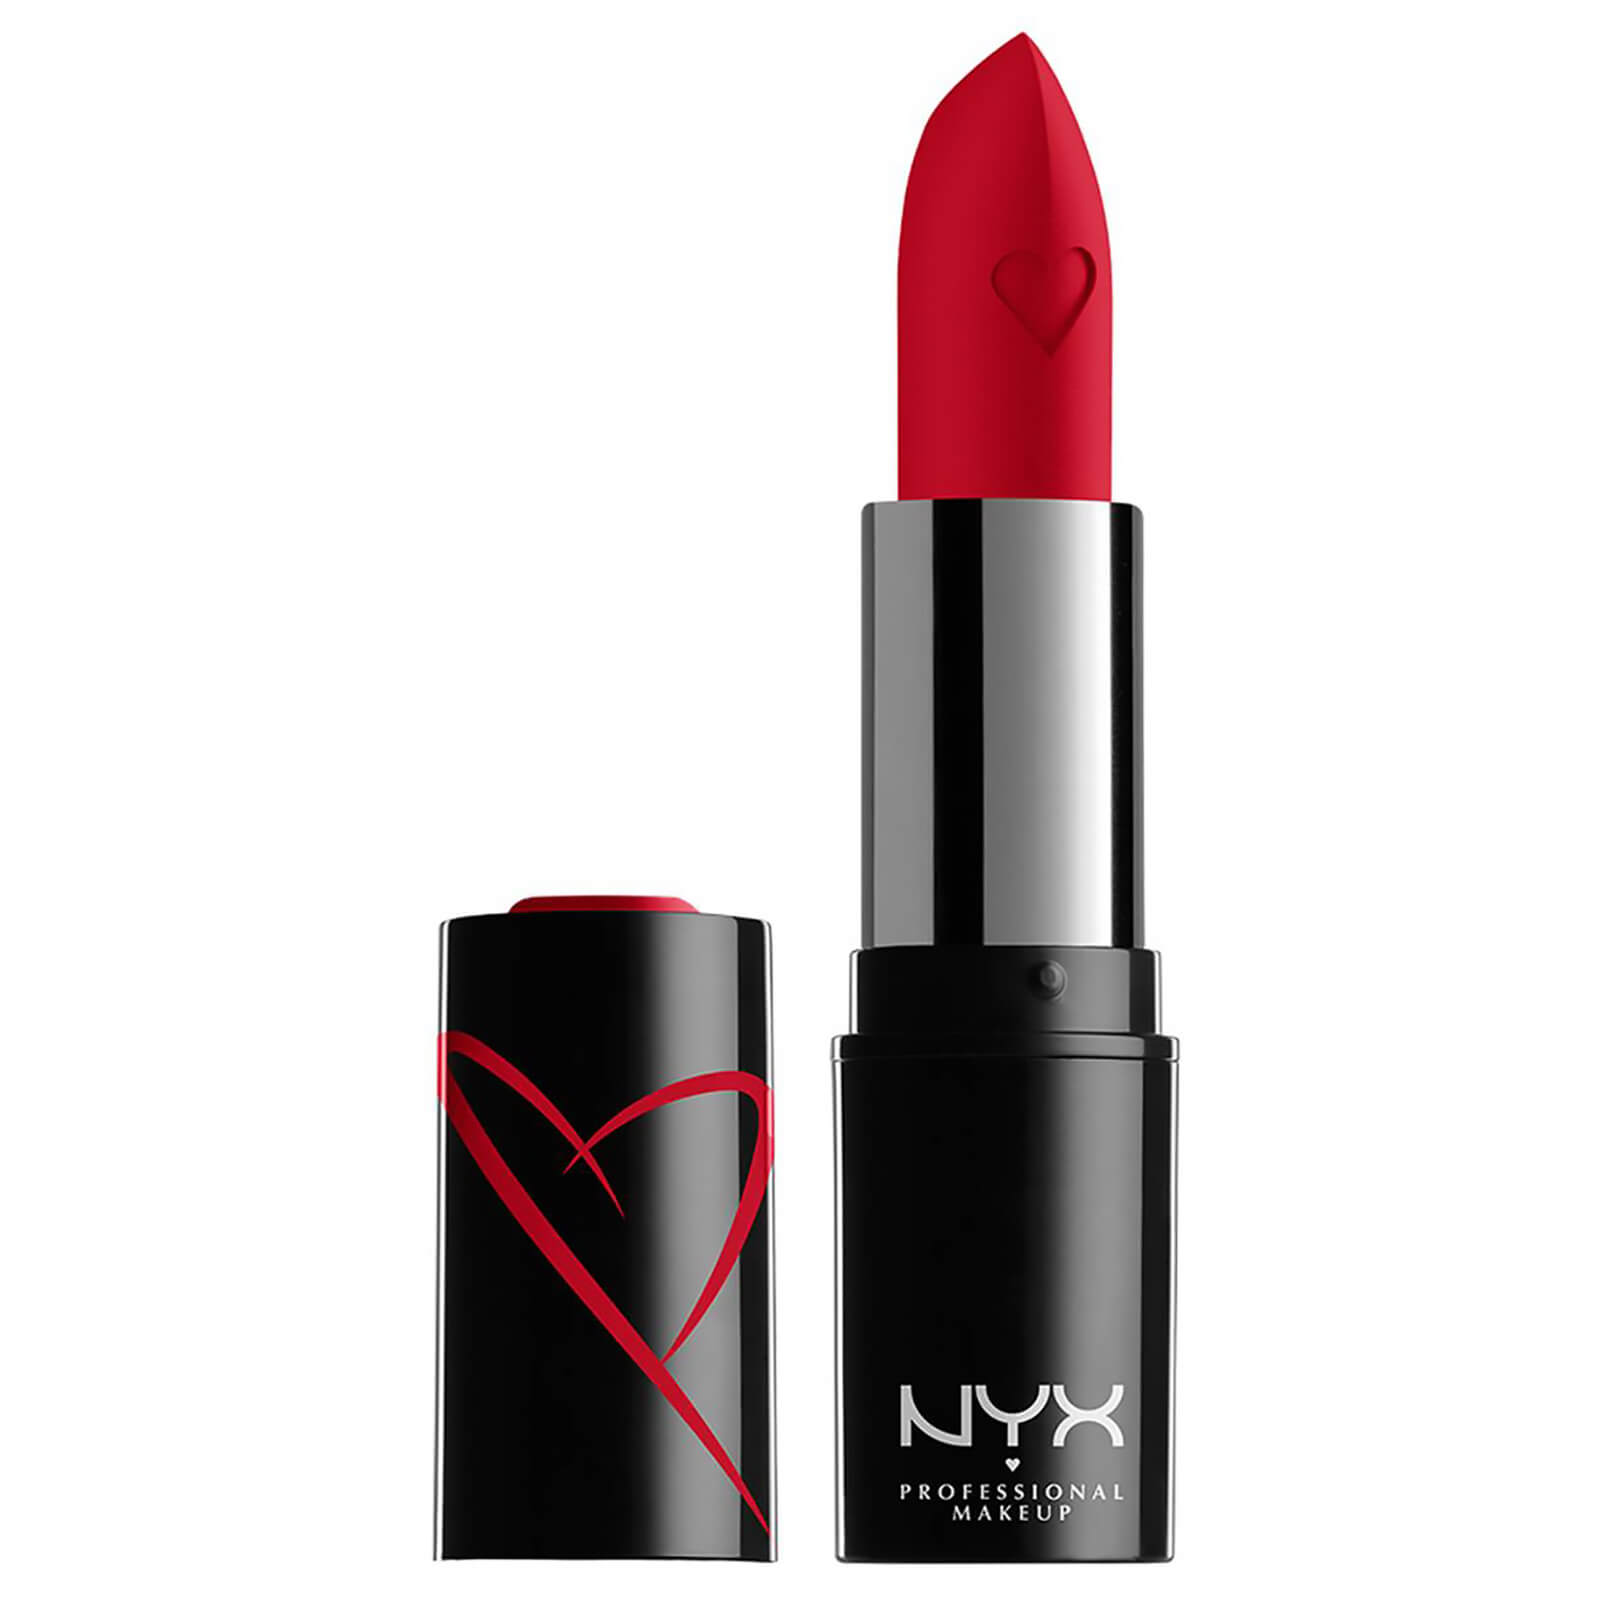 nyx professional makeup shout loud hydrating satin lipstick (various shades) - red haute